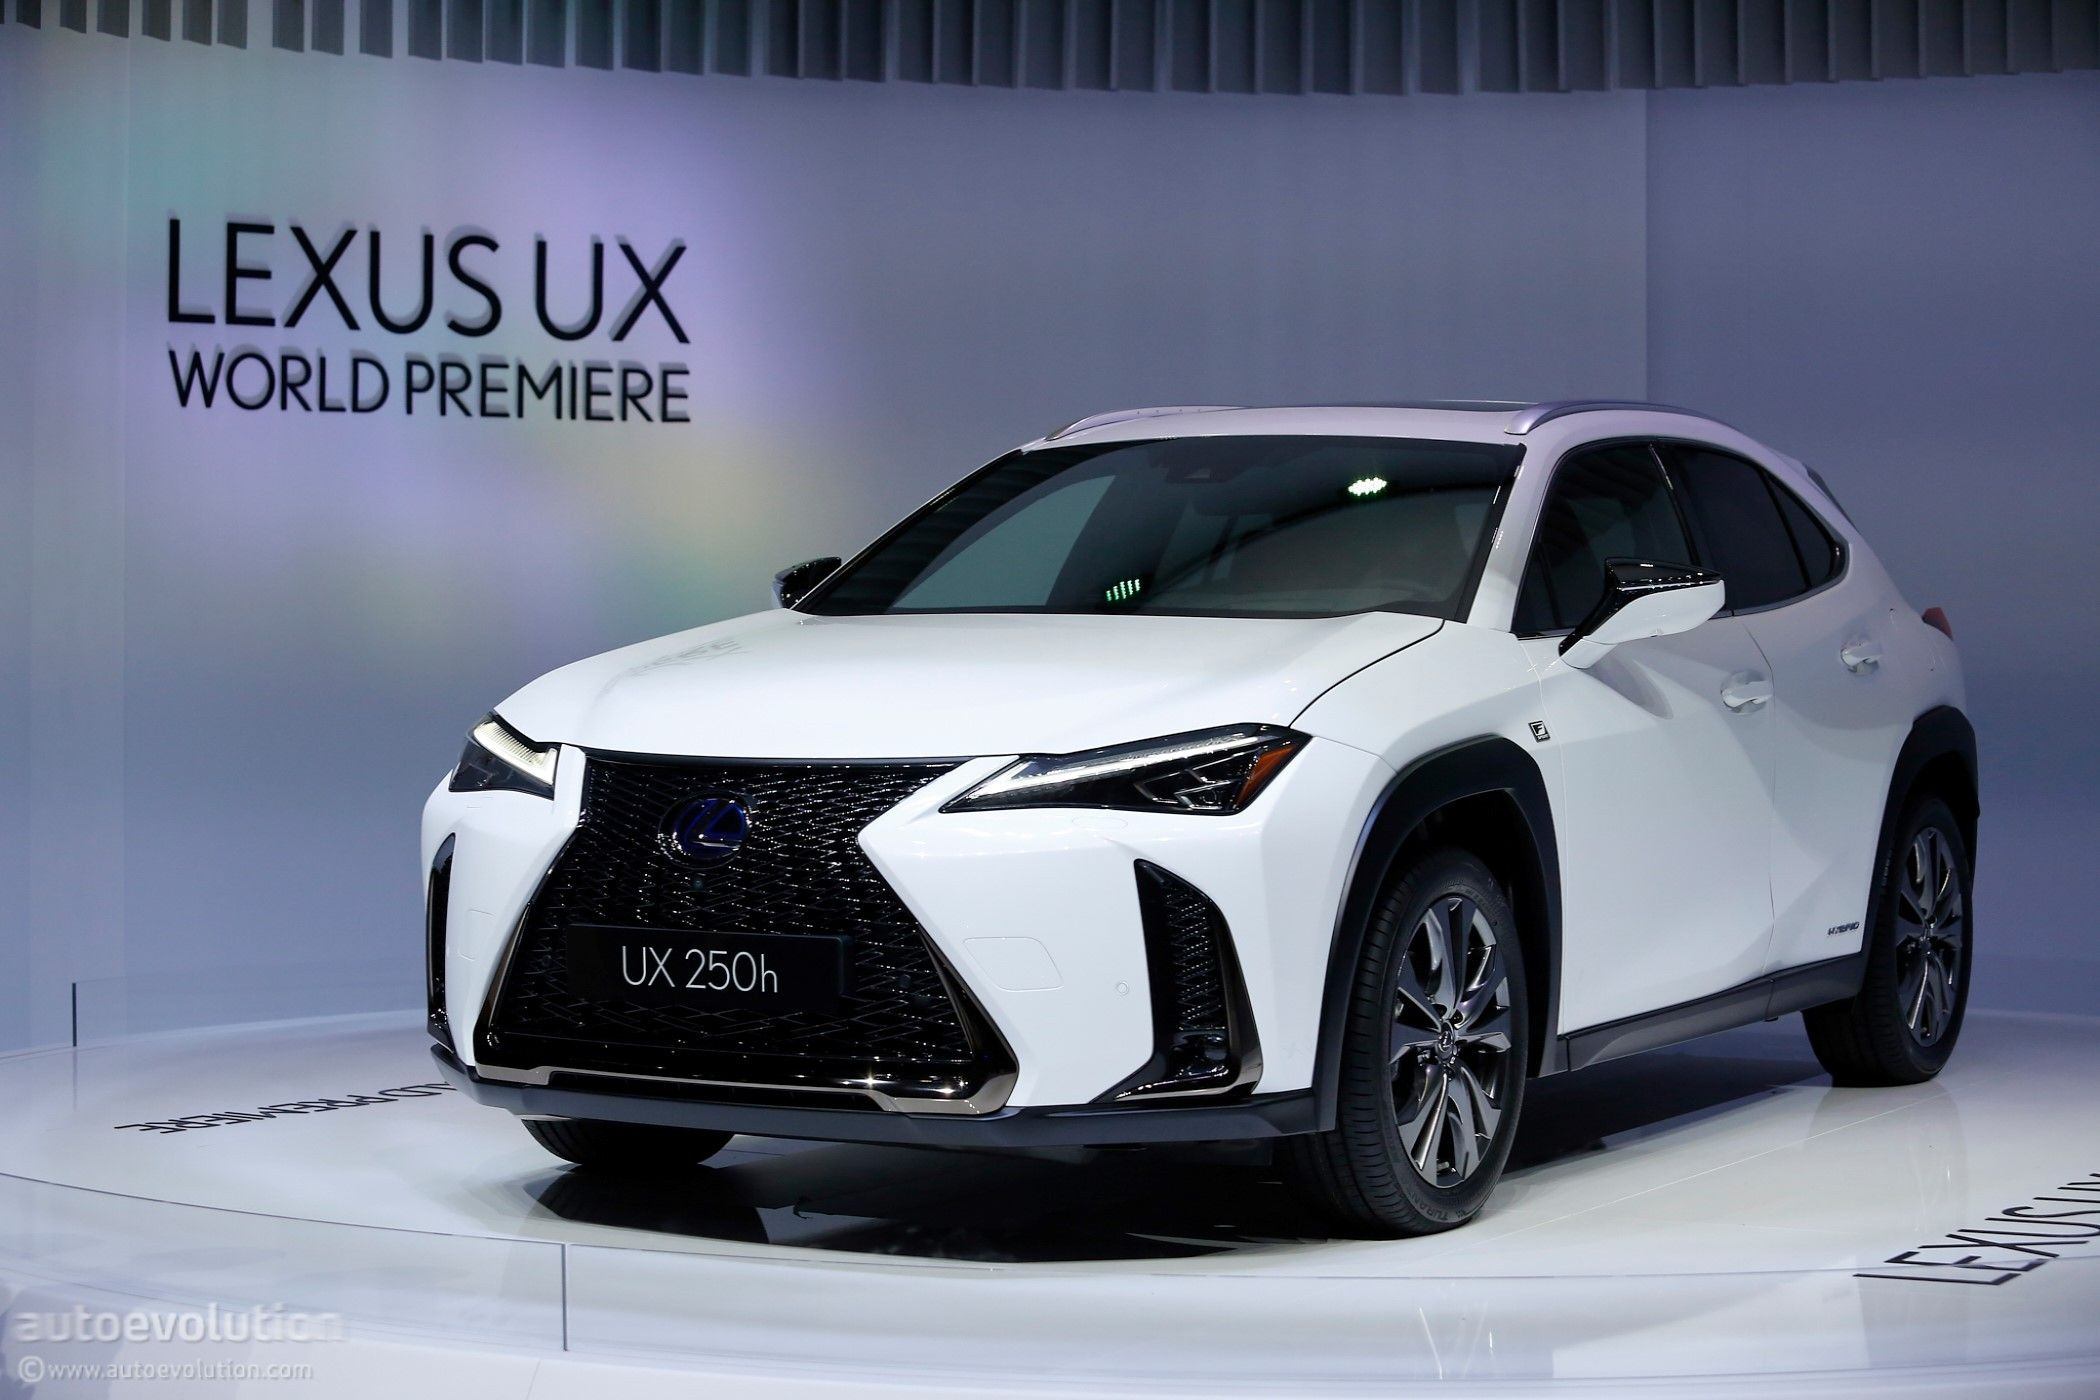 Lexus 2020 Is New Lexus Lexus Hybrid Car